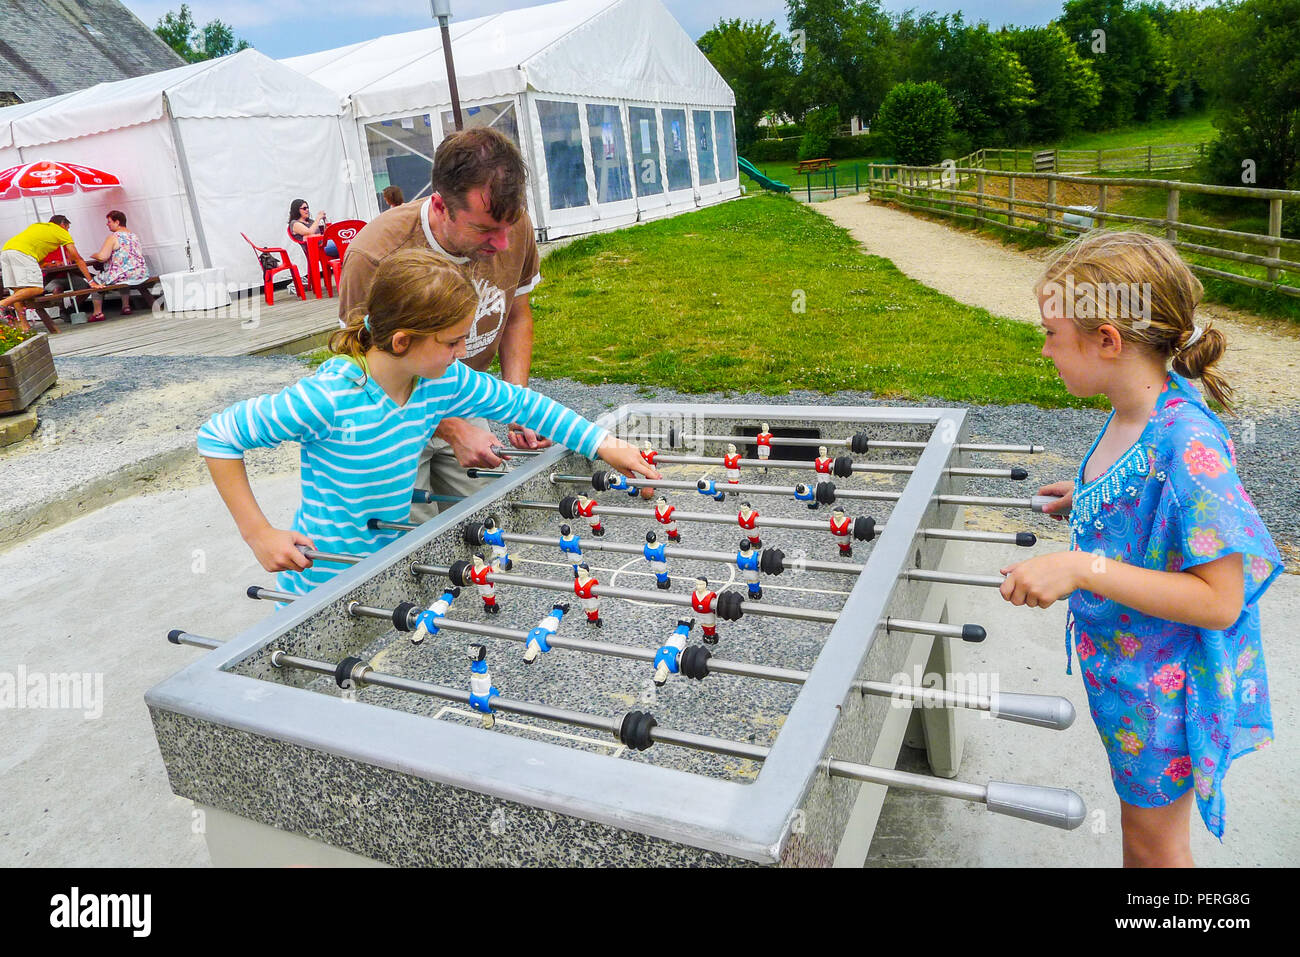 father and children playing table football/ Fussball / Fußball - Stock Image